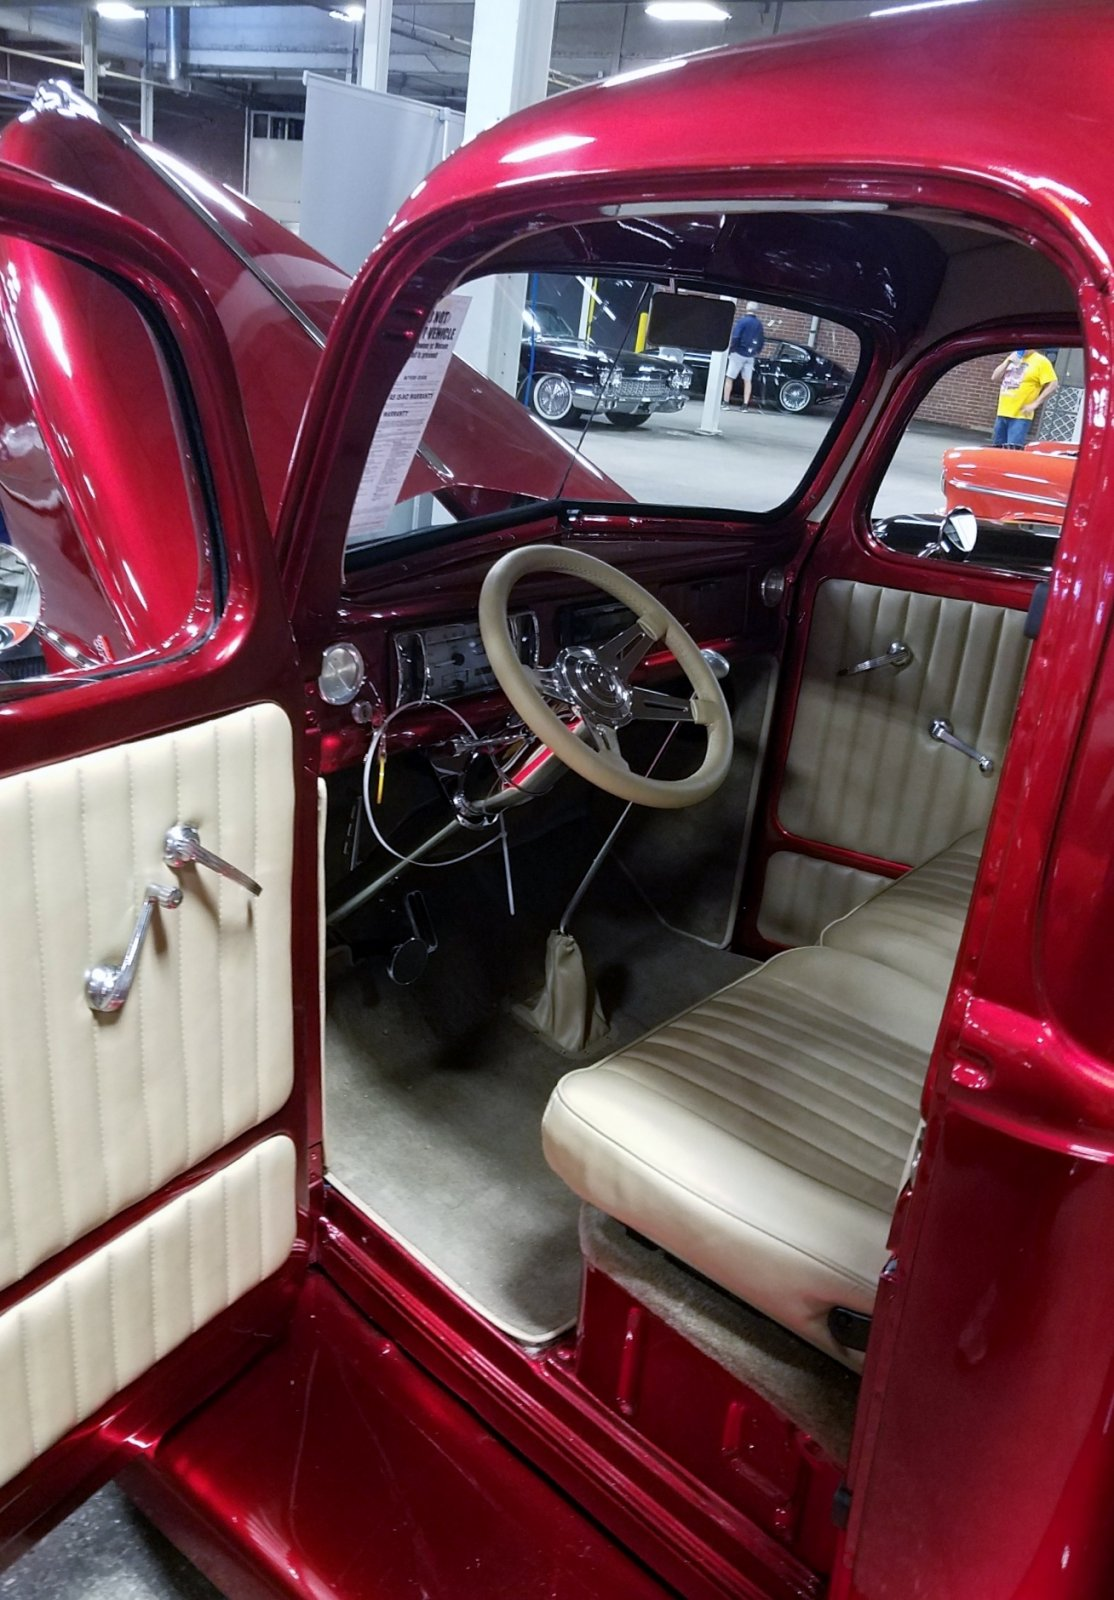 1940 Ford Pickup Truck Candy Apple 7.jpg